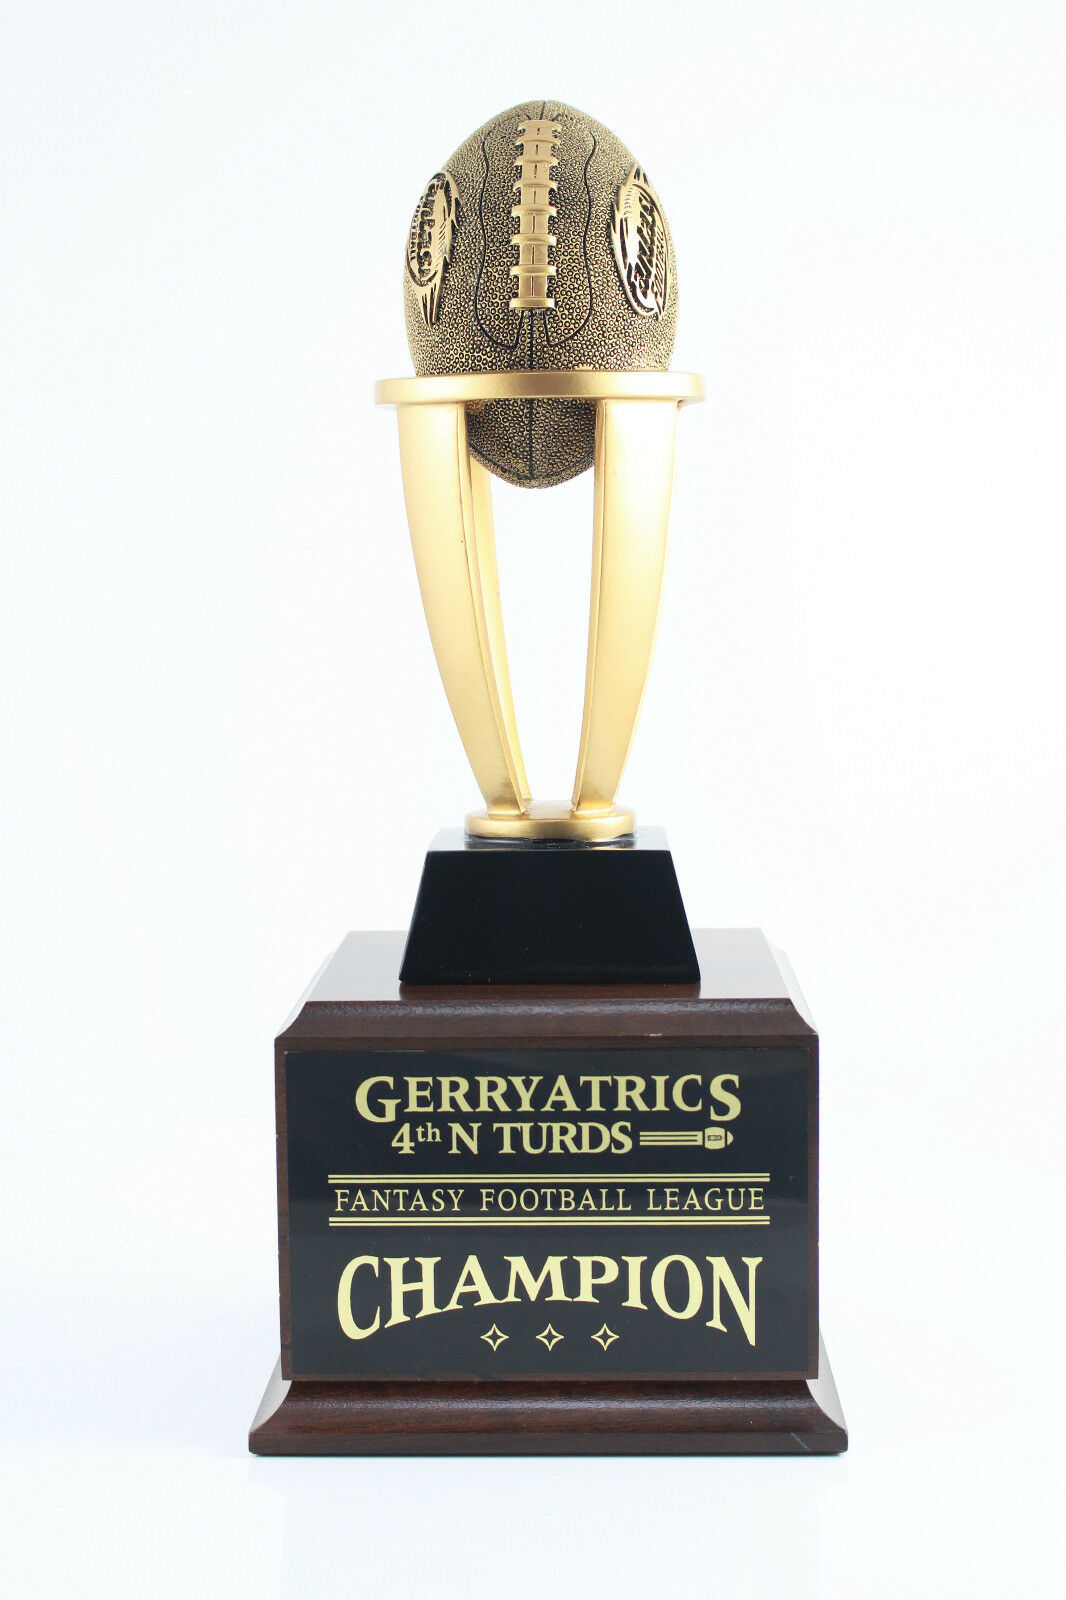 6 YEAR TOWER FANTASY FOOTBALL TROPHY - FREE ENGRAVING  SHIPS IN 1 DAY